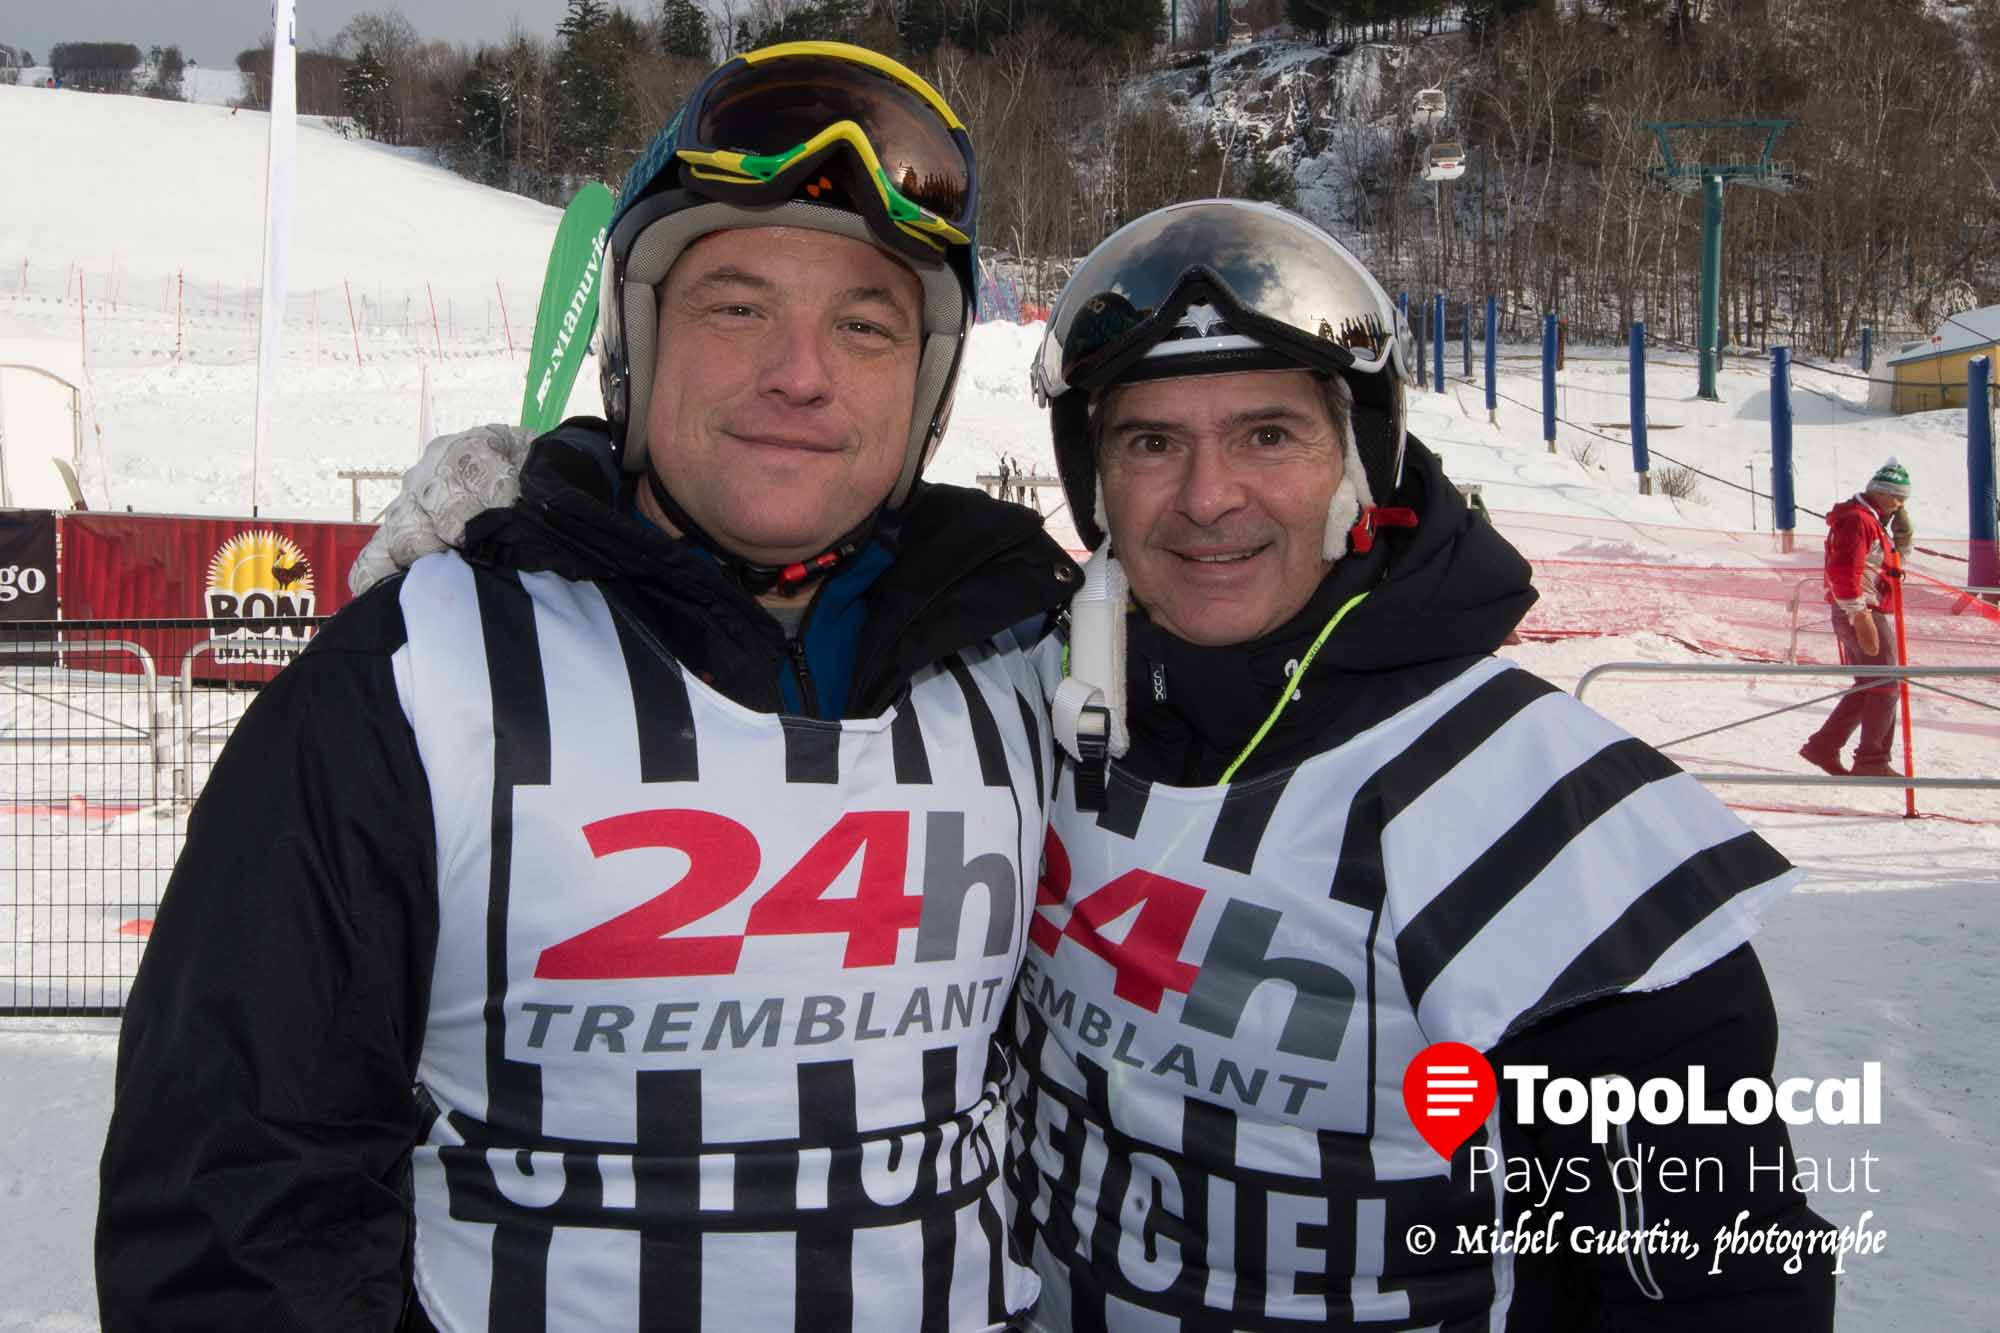 20161210-tremblant-24-heures-canadian-tire-st-hubert-6